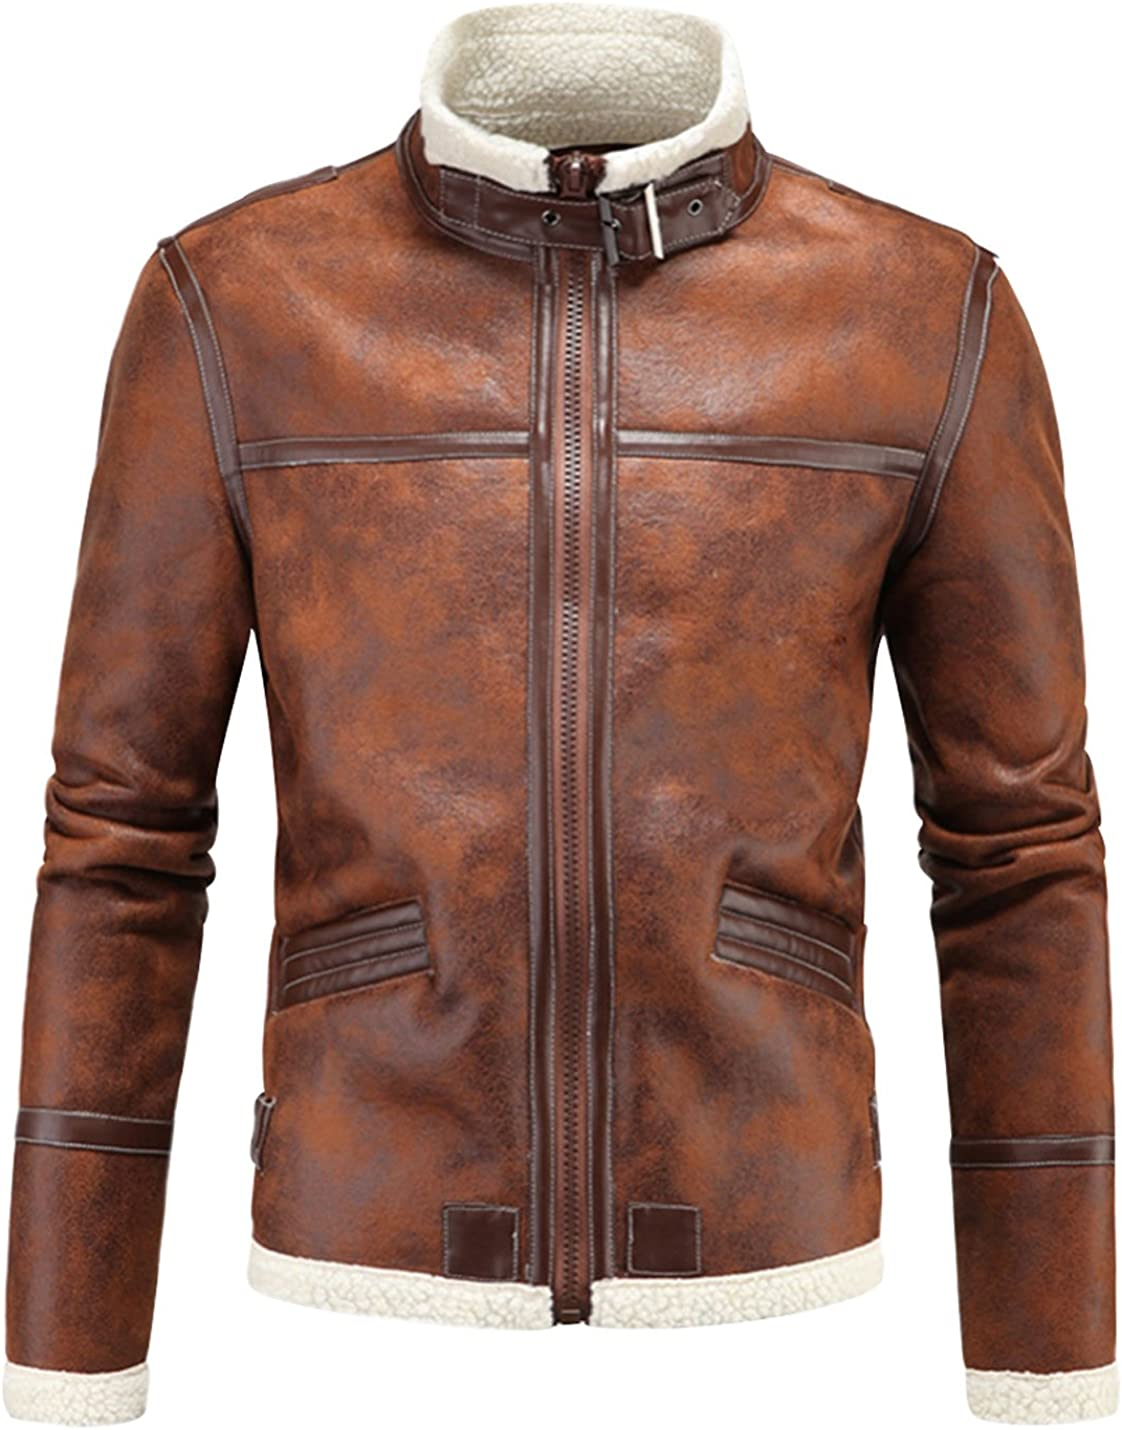 Gihuo Men's Vintage Sherpa Lined Jacket Suede Moto Max 69% OFF Ranking TOP1 Leather Faux